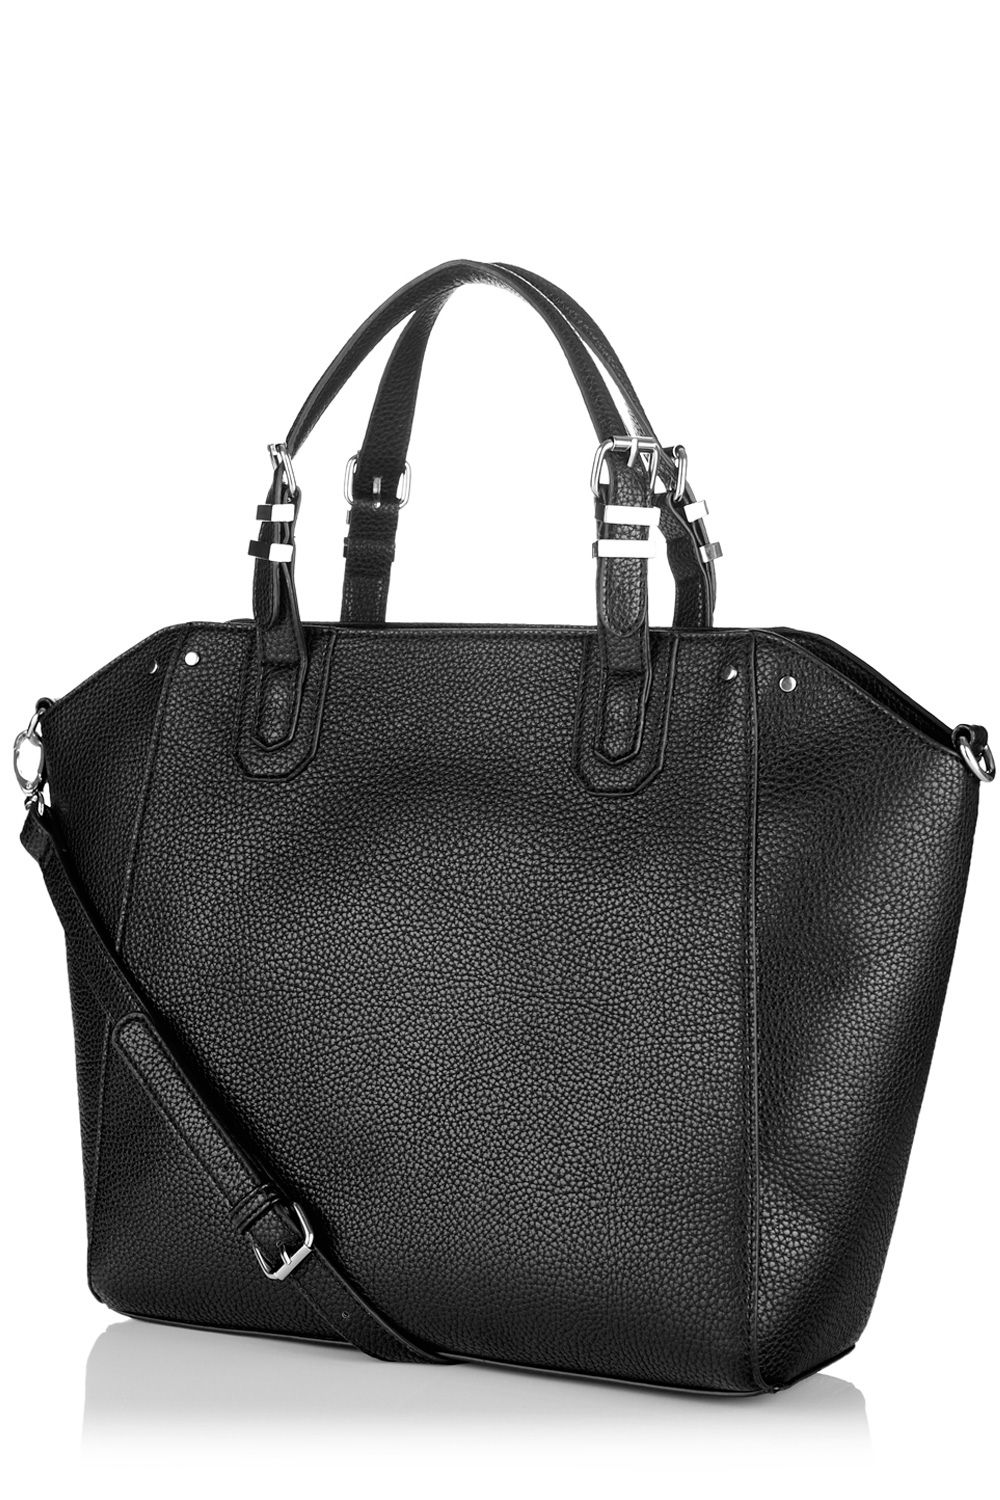 Rivet detail tote bag